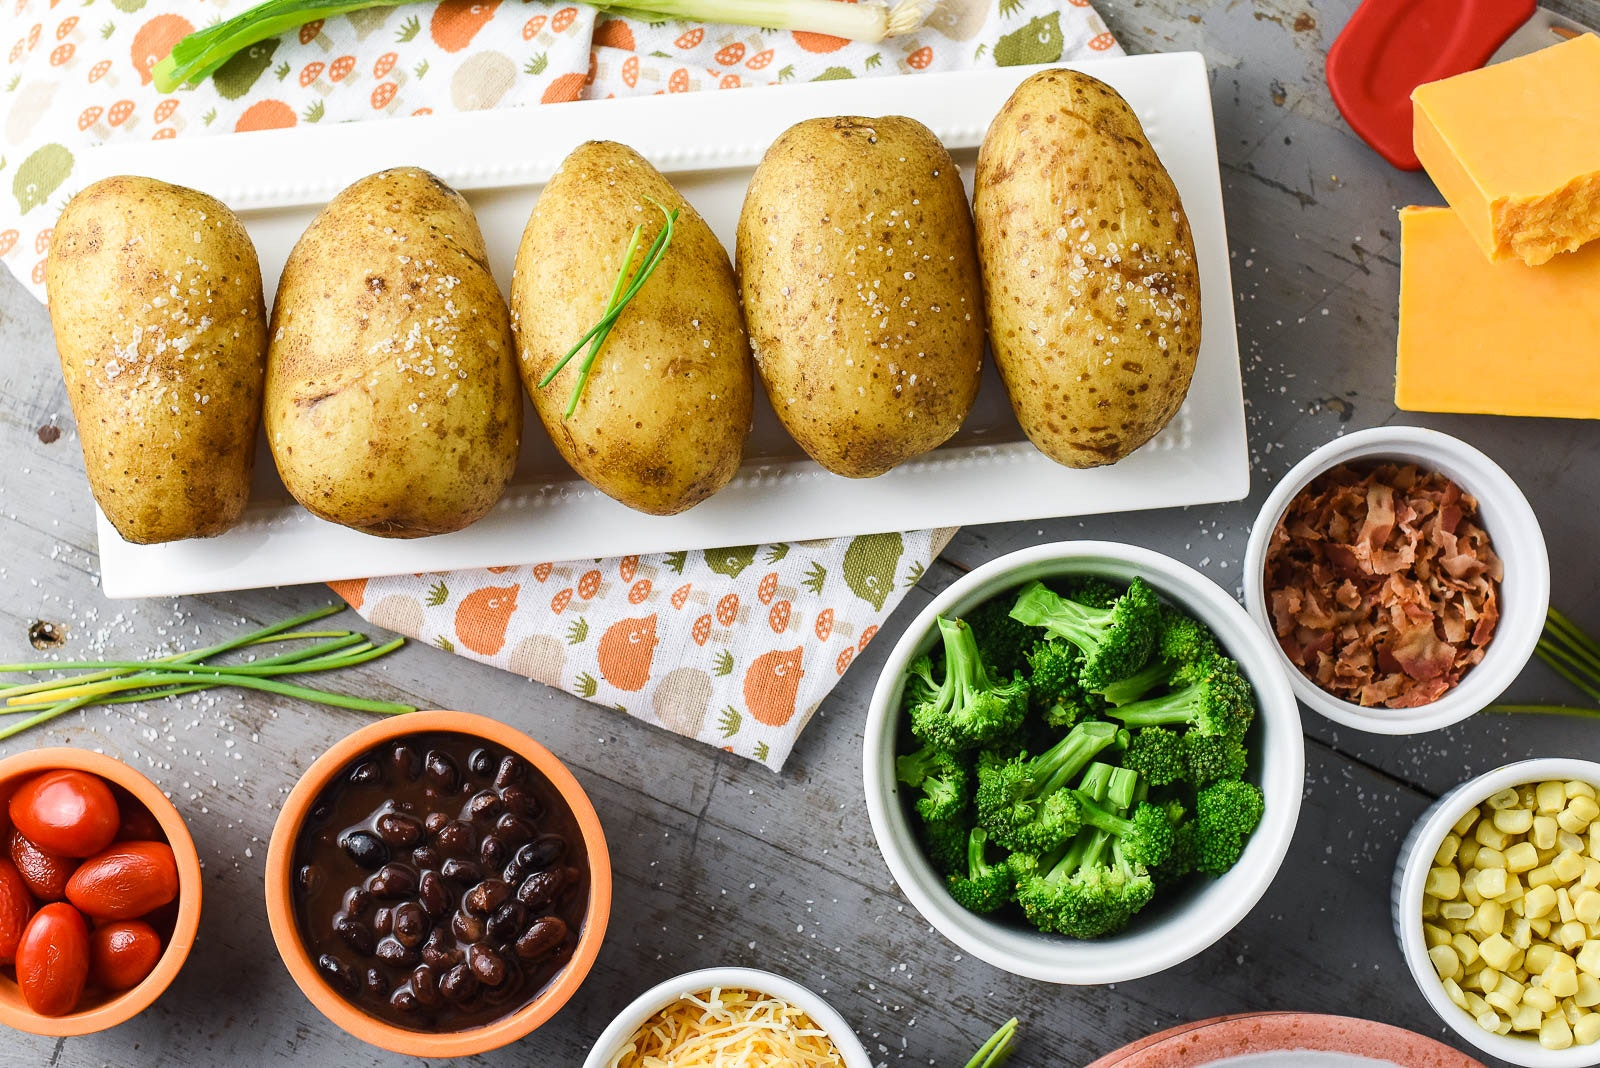 A Kid-Friendly Baked Potato Bar with Slow Cooker Baked Potatoes